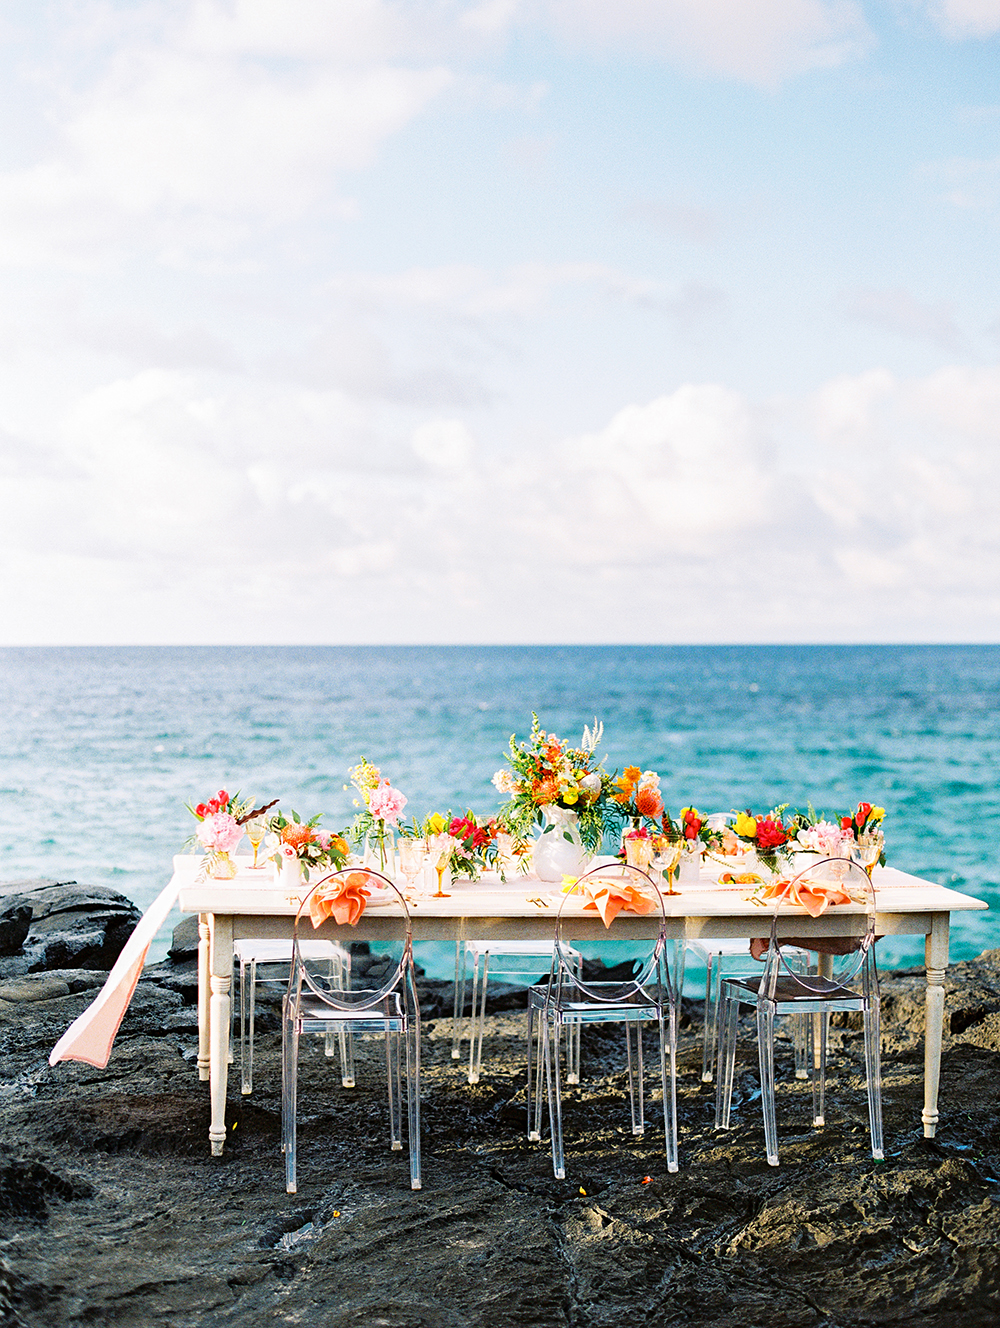 """Where to Start? - The first step to planning your Hawaiian wedding is selecting which of the main islands will kick off your happily ever after. The truth is, each island offers something completely different, so it's important to evaluate your own vision, budget, and the physical needs of your wedding day! Read below for a few tips we gathered from our island-hopping that will hopefully shed insight into your big decision.MauiMaui was a highlight of the trip for our team - a verdant, highly creative island where one can still find traces of the old-school, bohemian charm it has always been known for. It is perhaps the island with the most diversity in regards to nature and microclimates, but also offers a wide variety of luxury resorts and incredible, industry-recognized vendors who are centrally located to make it as easy as possible to hire them for your wedding day.OahuOahu is Hawaii's main island and hosts the city of Honolulu, the state's most buzzing metro area. For brides looking to accommodate a larger, more extravagant wedding without complications, this is the island we recommend. The Honolulu airport is an easy landing spot for international guests, and just outside of the city you will still find long stretches of beach with fabulous surf. Waikiki is lined with four star resorts and many of Hawaii's leading vendors call this island home, making it easily accessible for them even during busy weekends.The Big IslandThe biggest isle of Hawaii, Big Island is an incredible vast landscape of microclimates, ranging from verdant green hillsides to black lava fields. The island hosts many volcanoes - both snowy and actively spouting lava - as well as the renowned Mauna Kea Observatory, where visitors can enjoy exceptional stargazing. Most of The Big Island's resorts can be found on the west coast near Kona and have been made popular for their coral reefs and quiet beaches.KauaiOften called """"The Garden Isle,"""" Kauai is well known as Hawaii's most lush and tropical"""